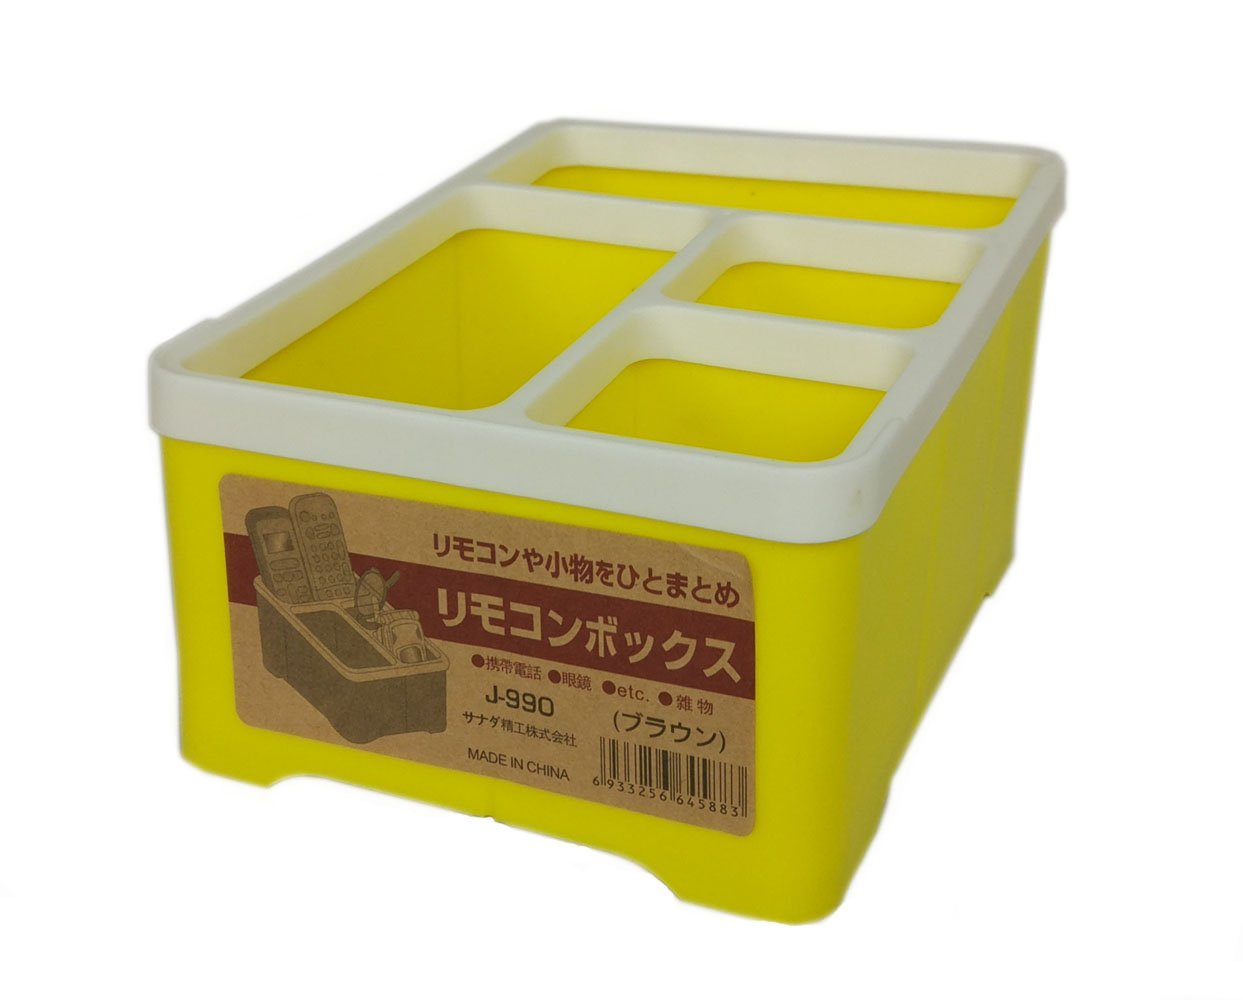 Remote Control Holder Remote Caddy Desk Storage Box Media Organizer Office Supplies Organizer For Bed Table Armchair Plastic Yellow